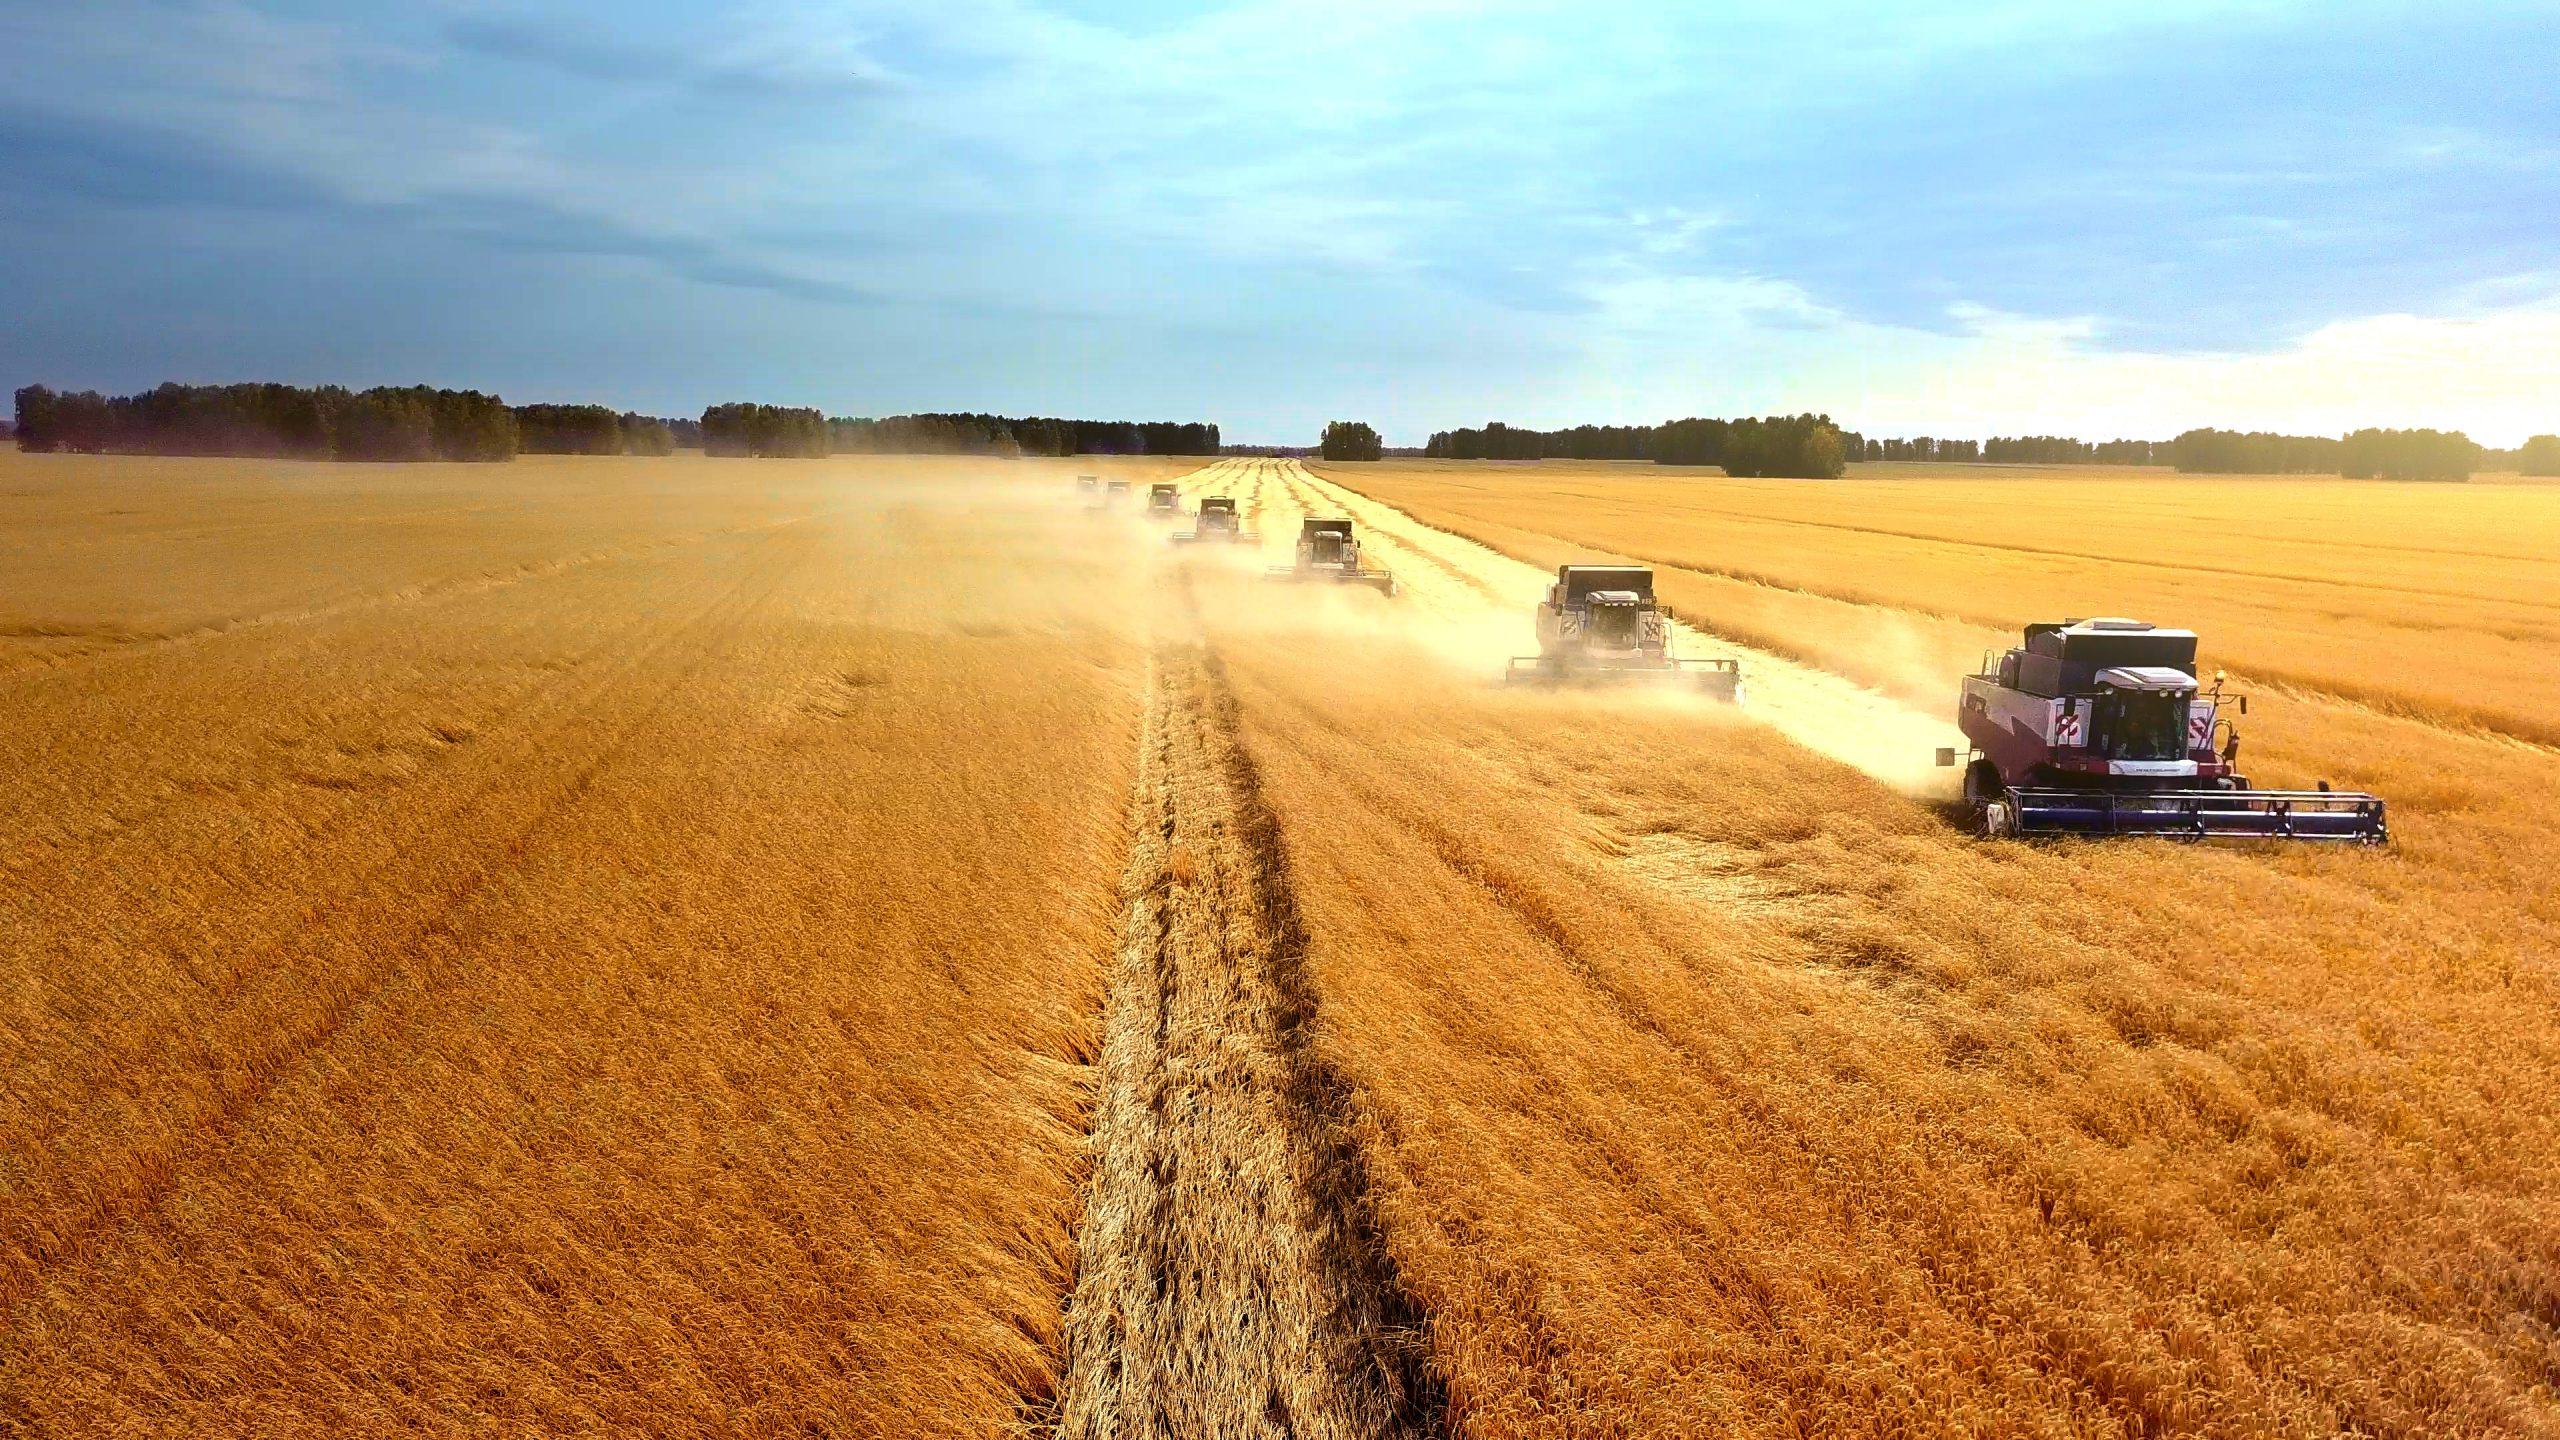 Seven harvesting machines in a diagonal row working in the field